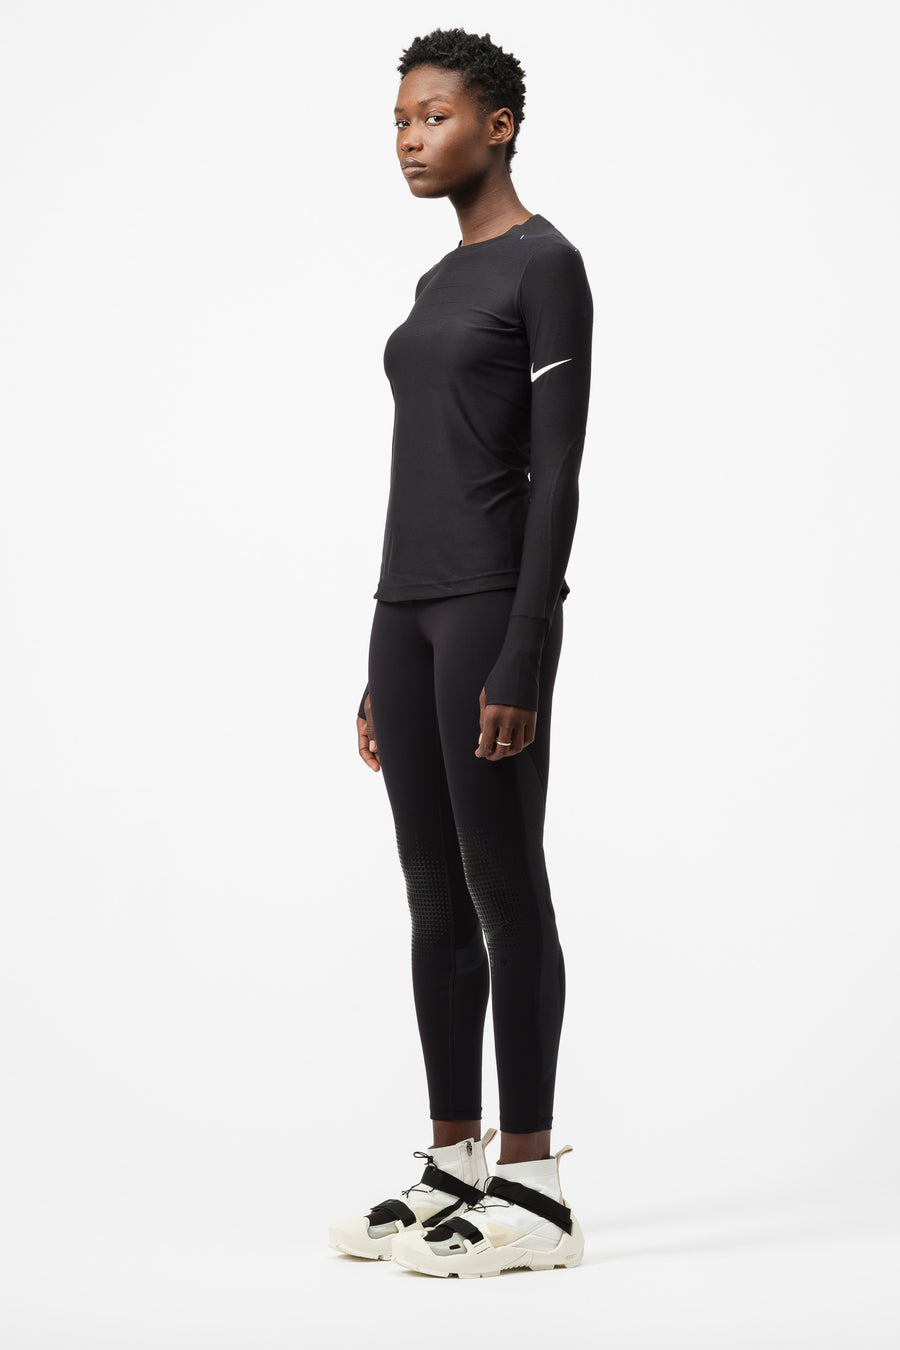 Nike MMW Long-Sleeve Top in Black - Notre